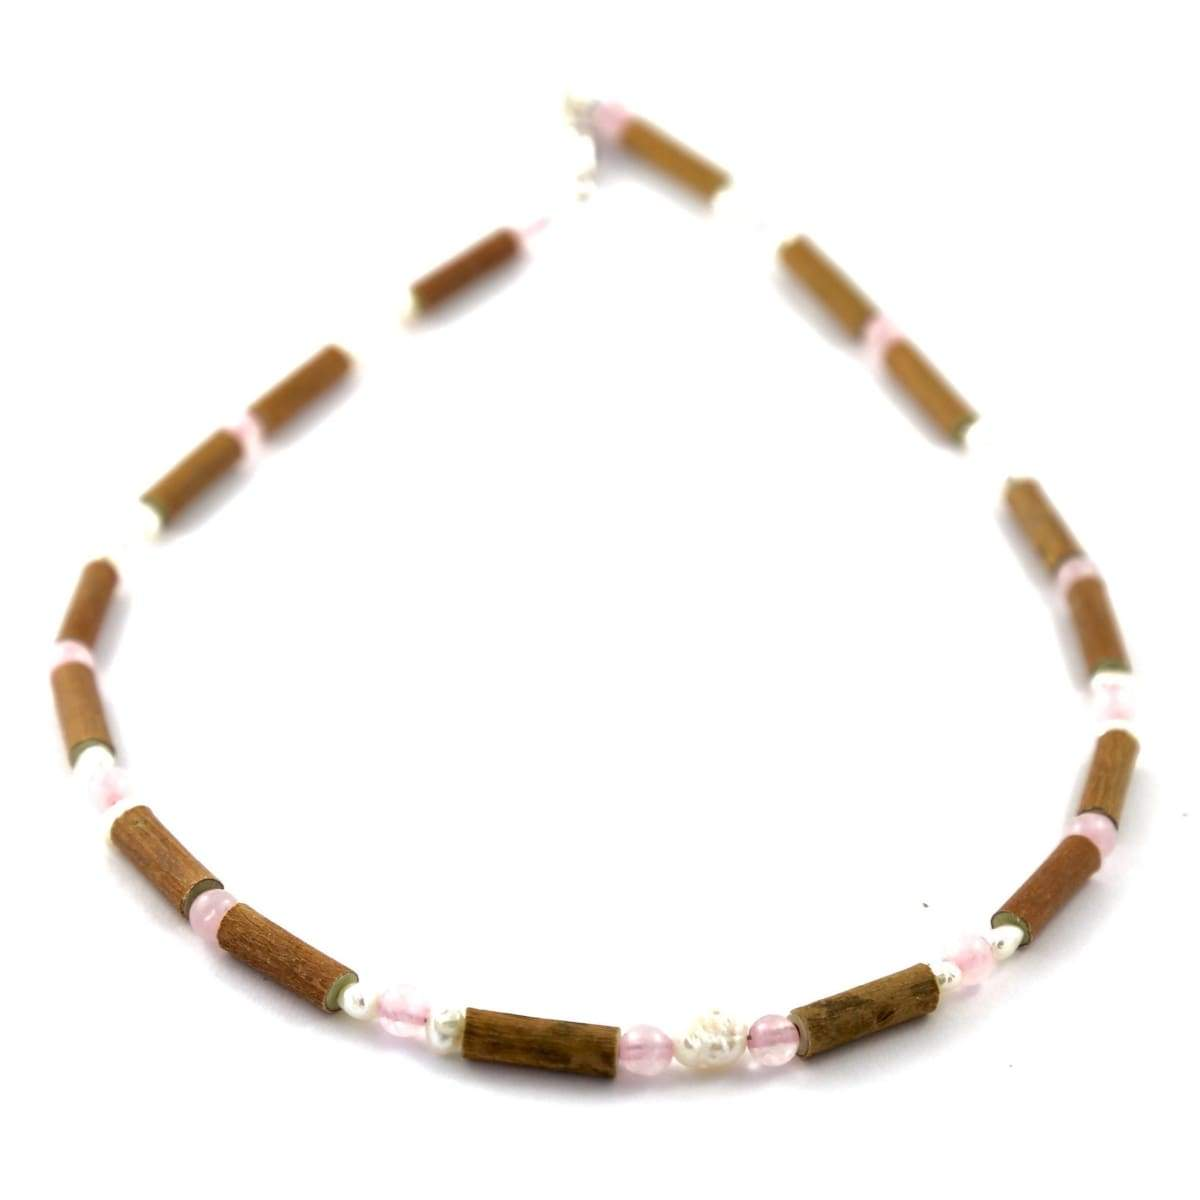 Hazel-Gemstone Freshwater Pearl & Rose Quartz - 11 Necklace - Barrel Twist Clasp - Hazelwood & Gemstone Jewelry